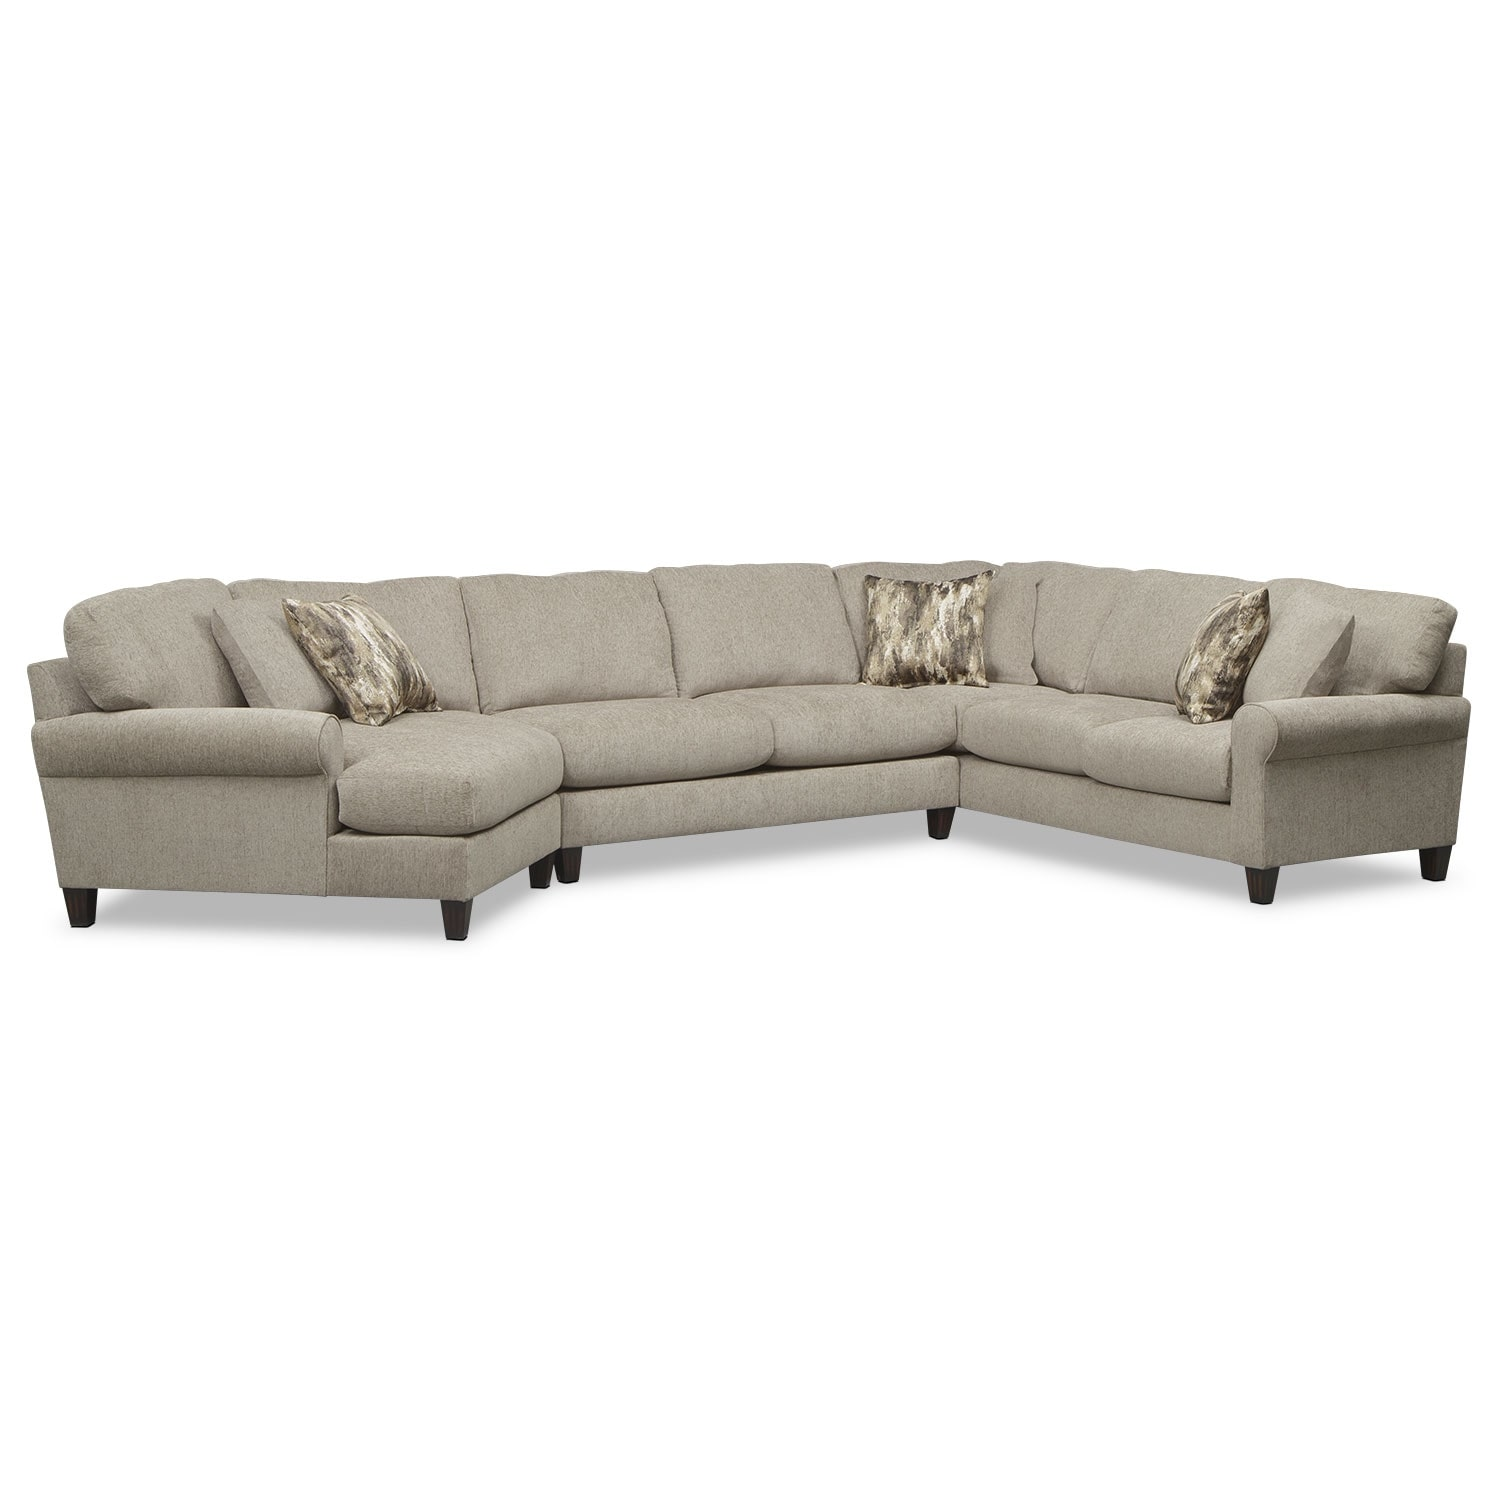 [Karma Mink 3 Pc. Sectional with Left-Facing Cuddler]